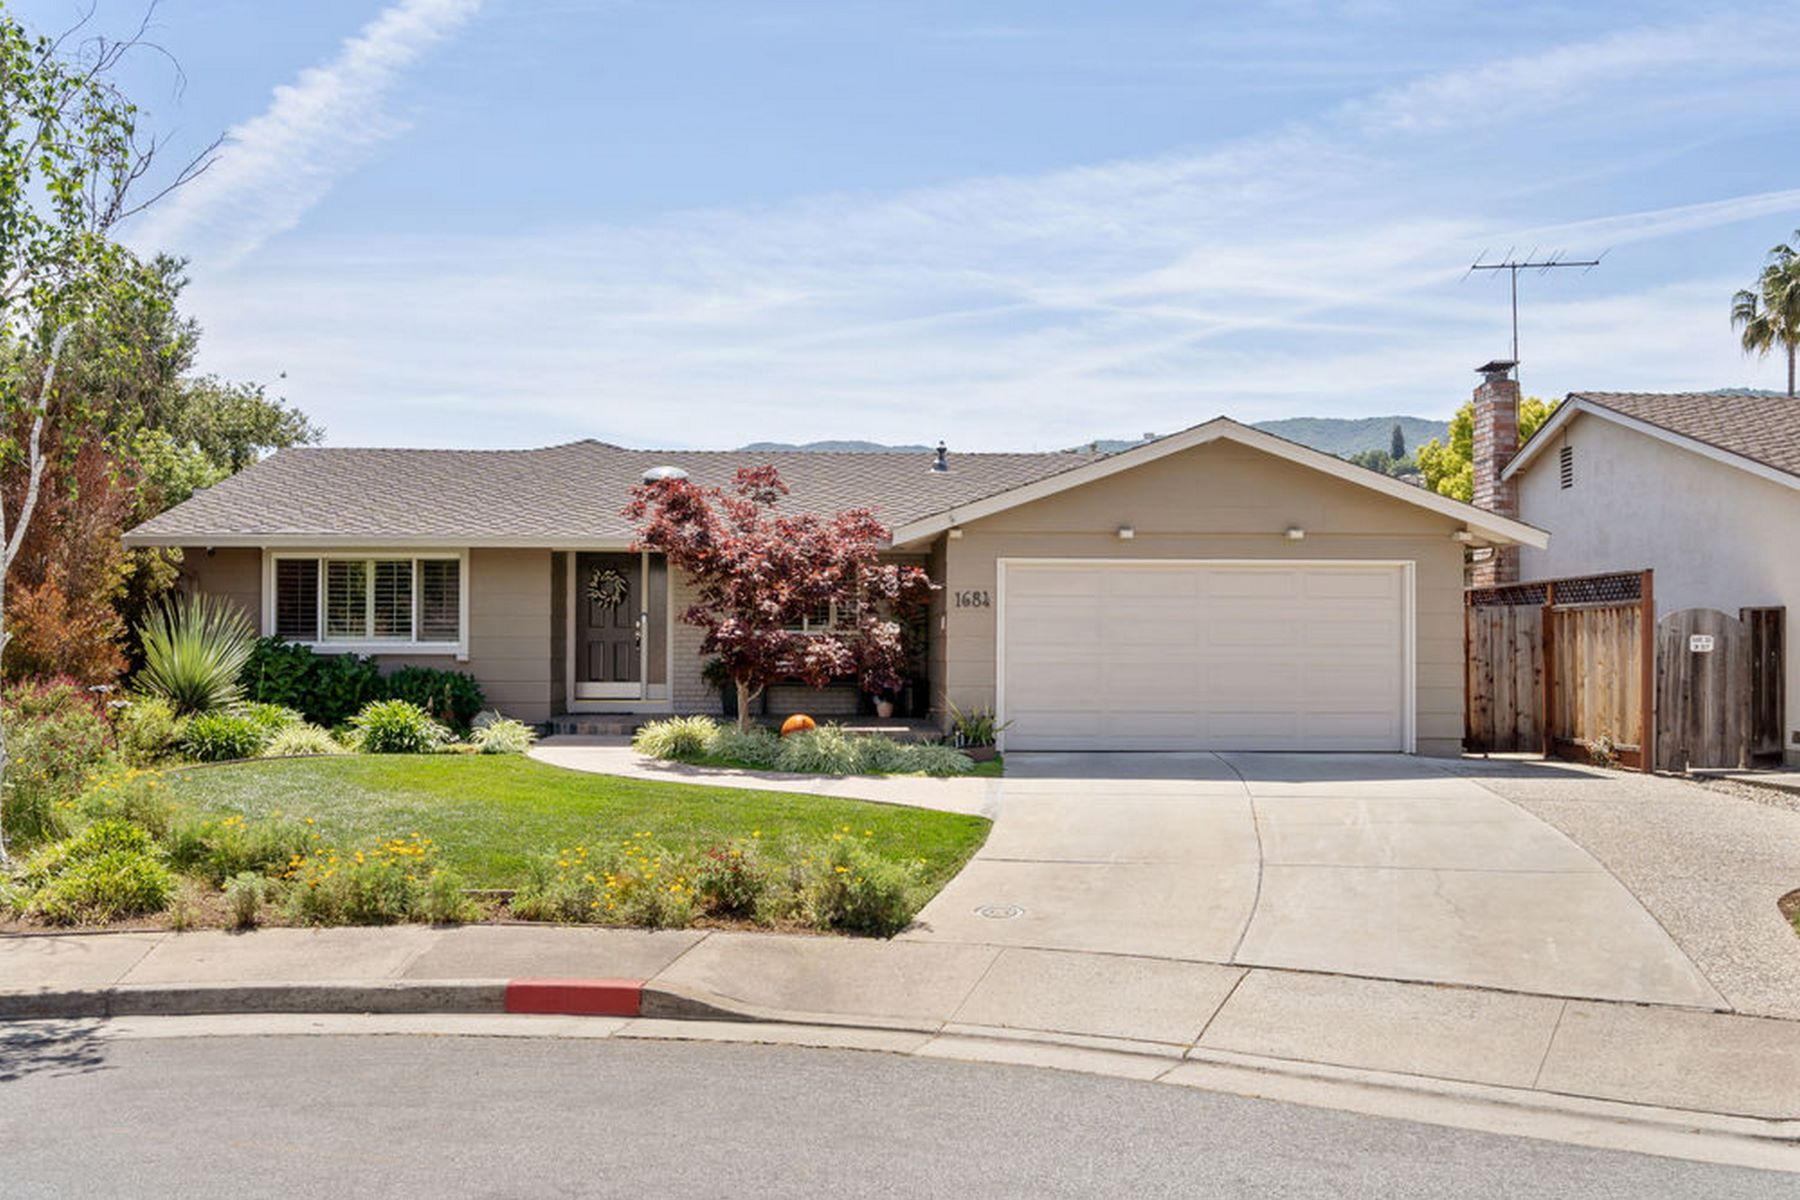 Single Family Homes for Active at Gorgeous remodel on a quite street 1684 Hydrangea Lane San Jose, California 95124 United States